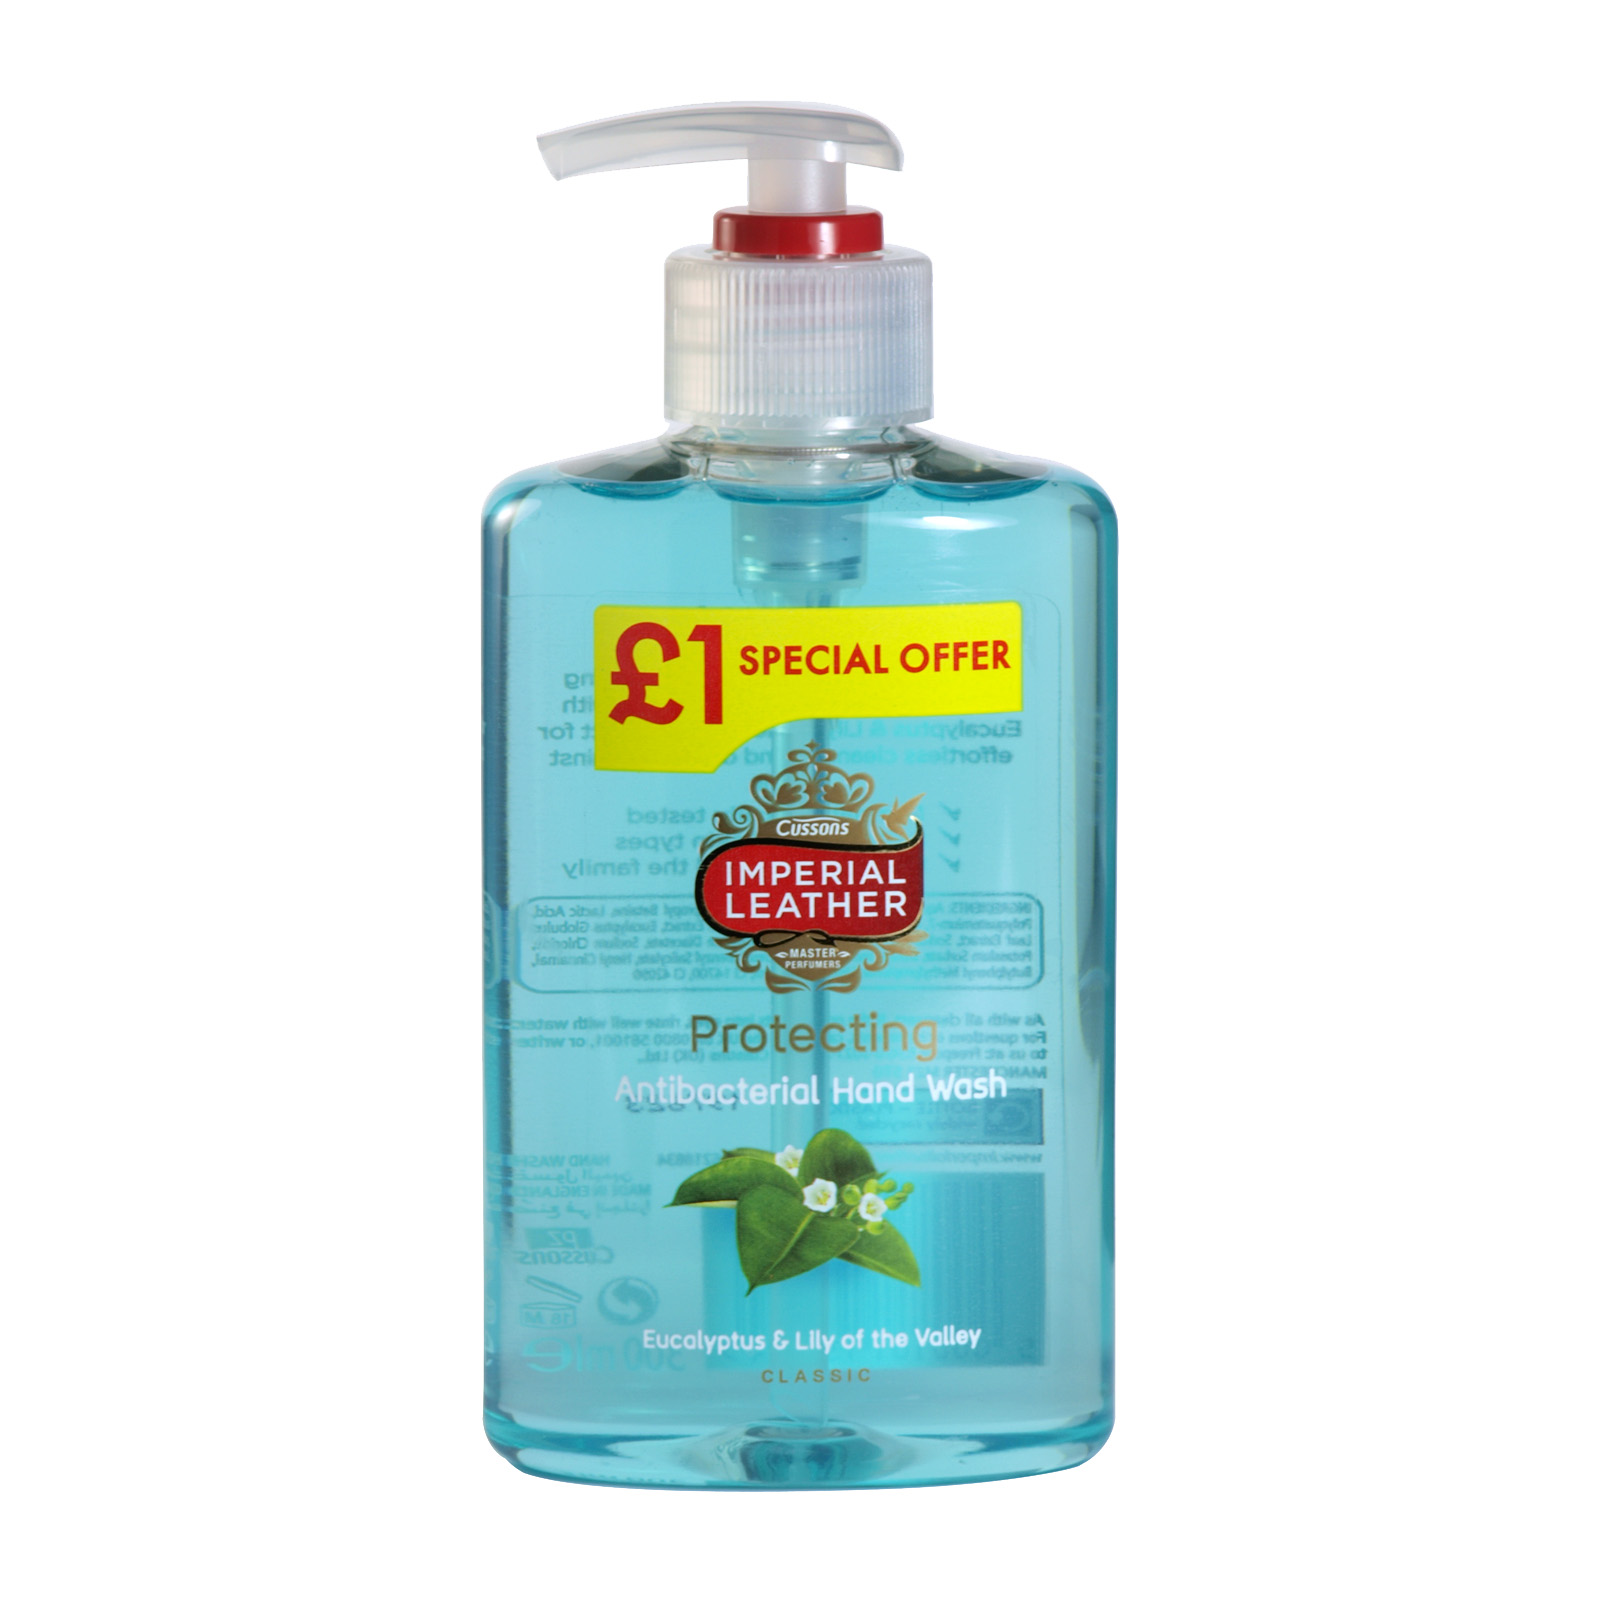 IMPERIAL LEATHER HANDWASH 300ML PROTECTING PM £1 X6